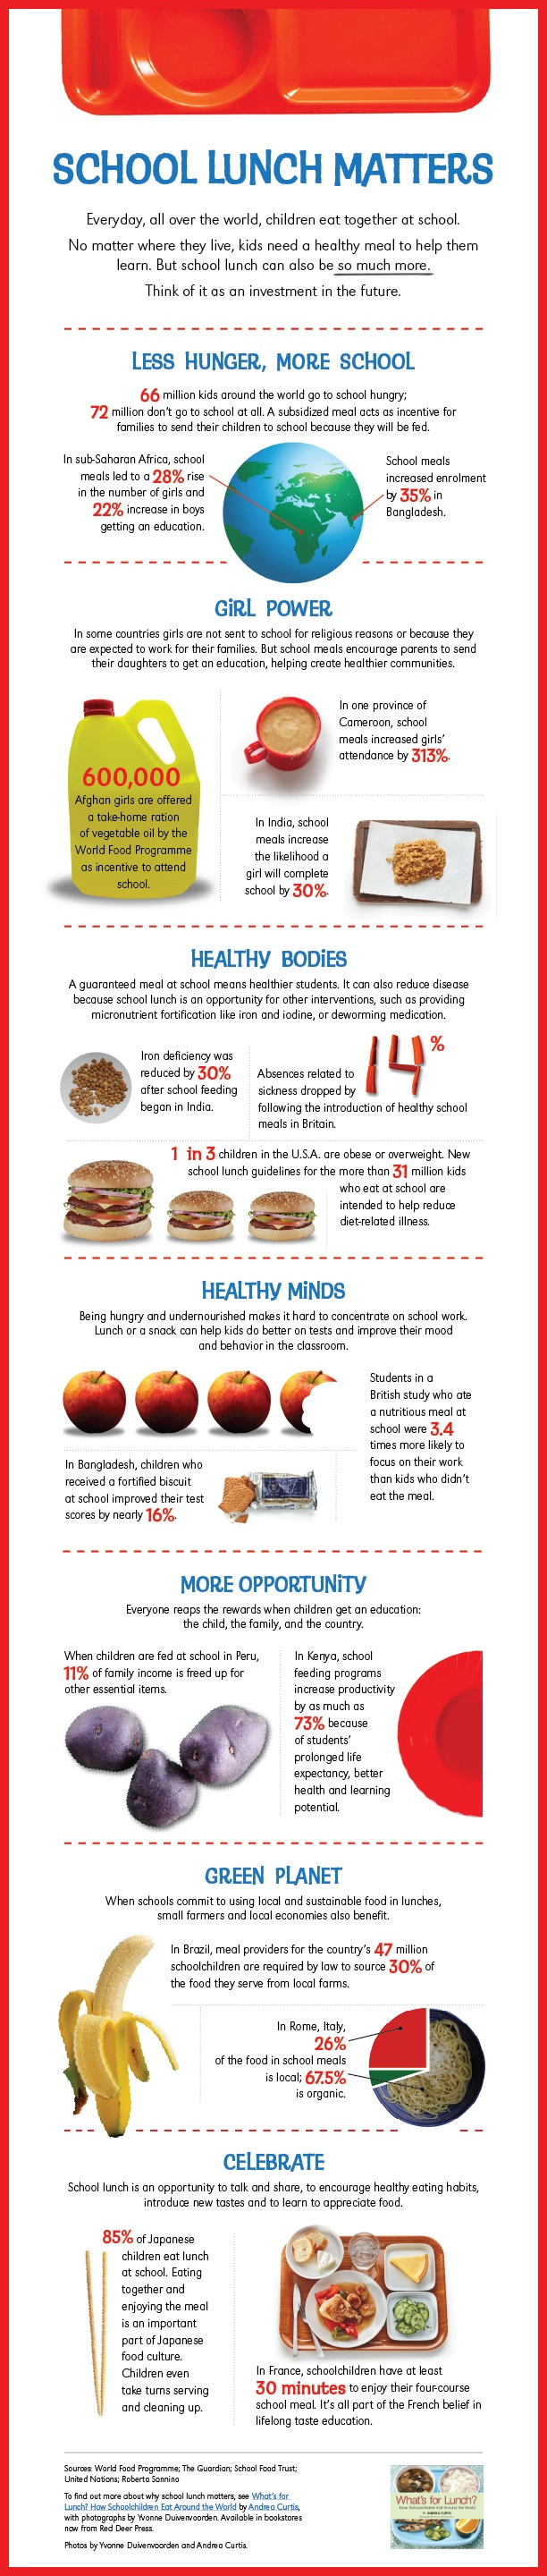 School Lunch Matters